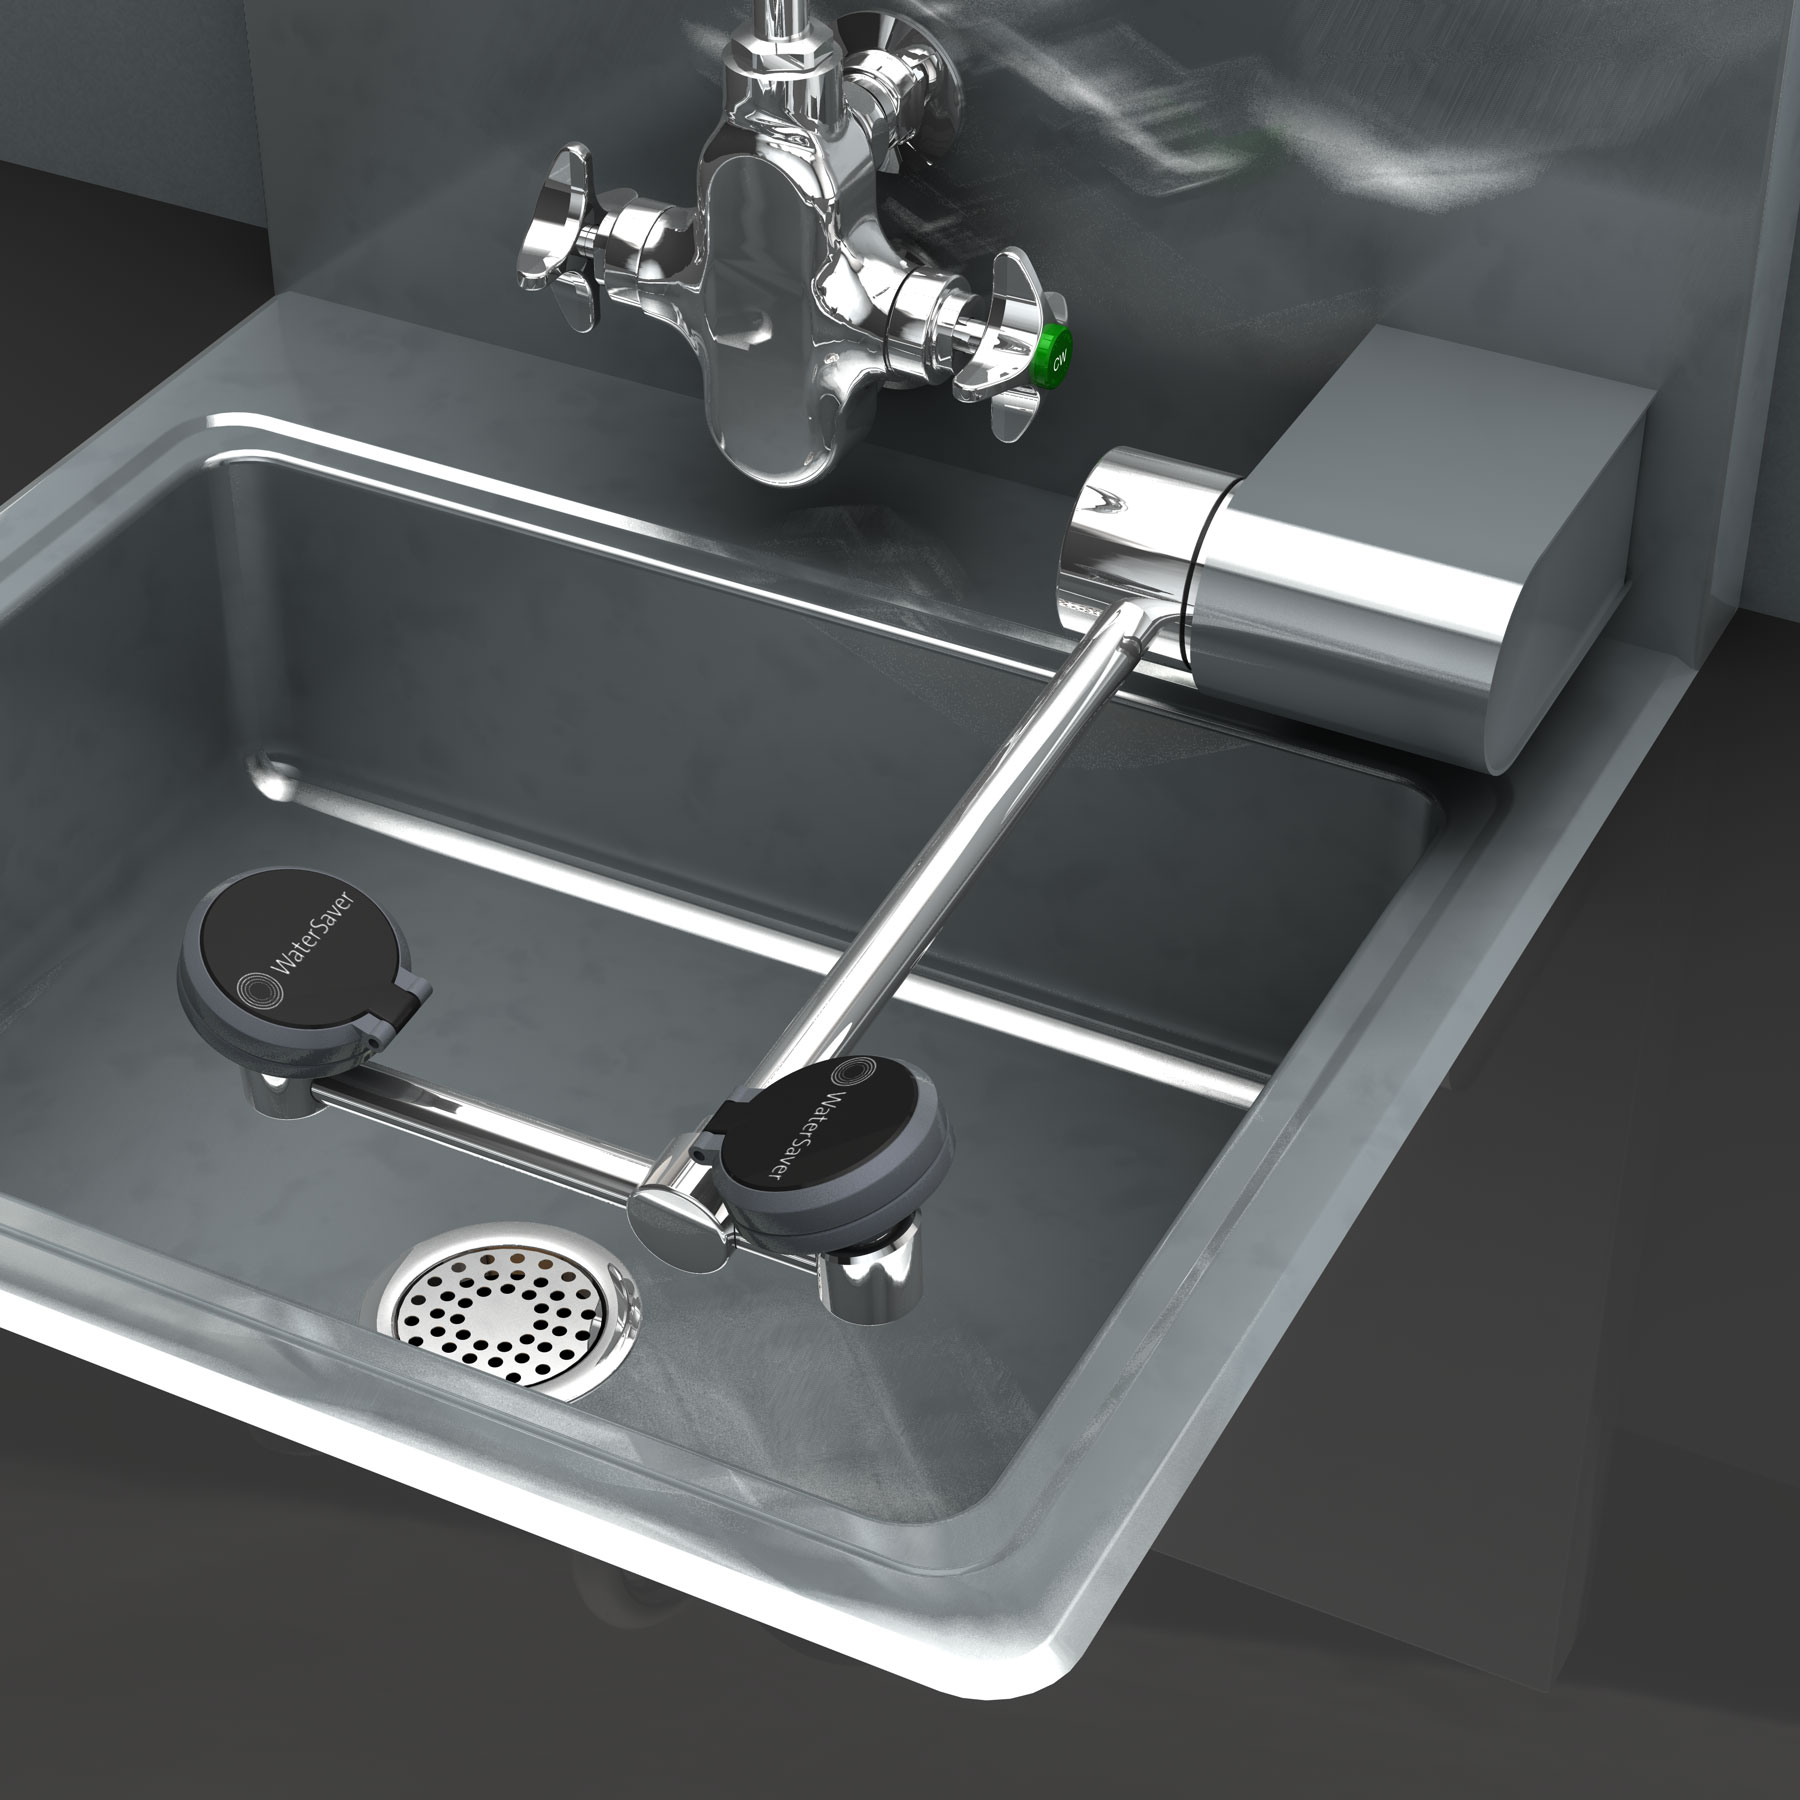 FE778 – WaterSaver Faucet Co.